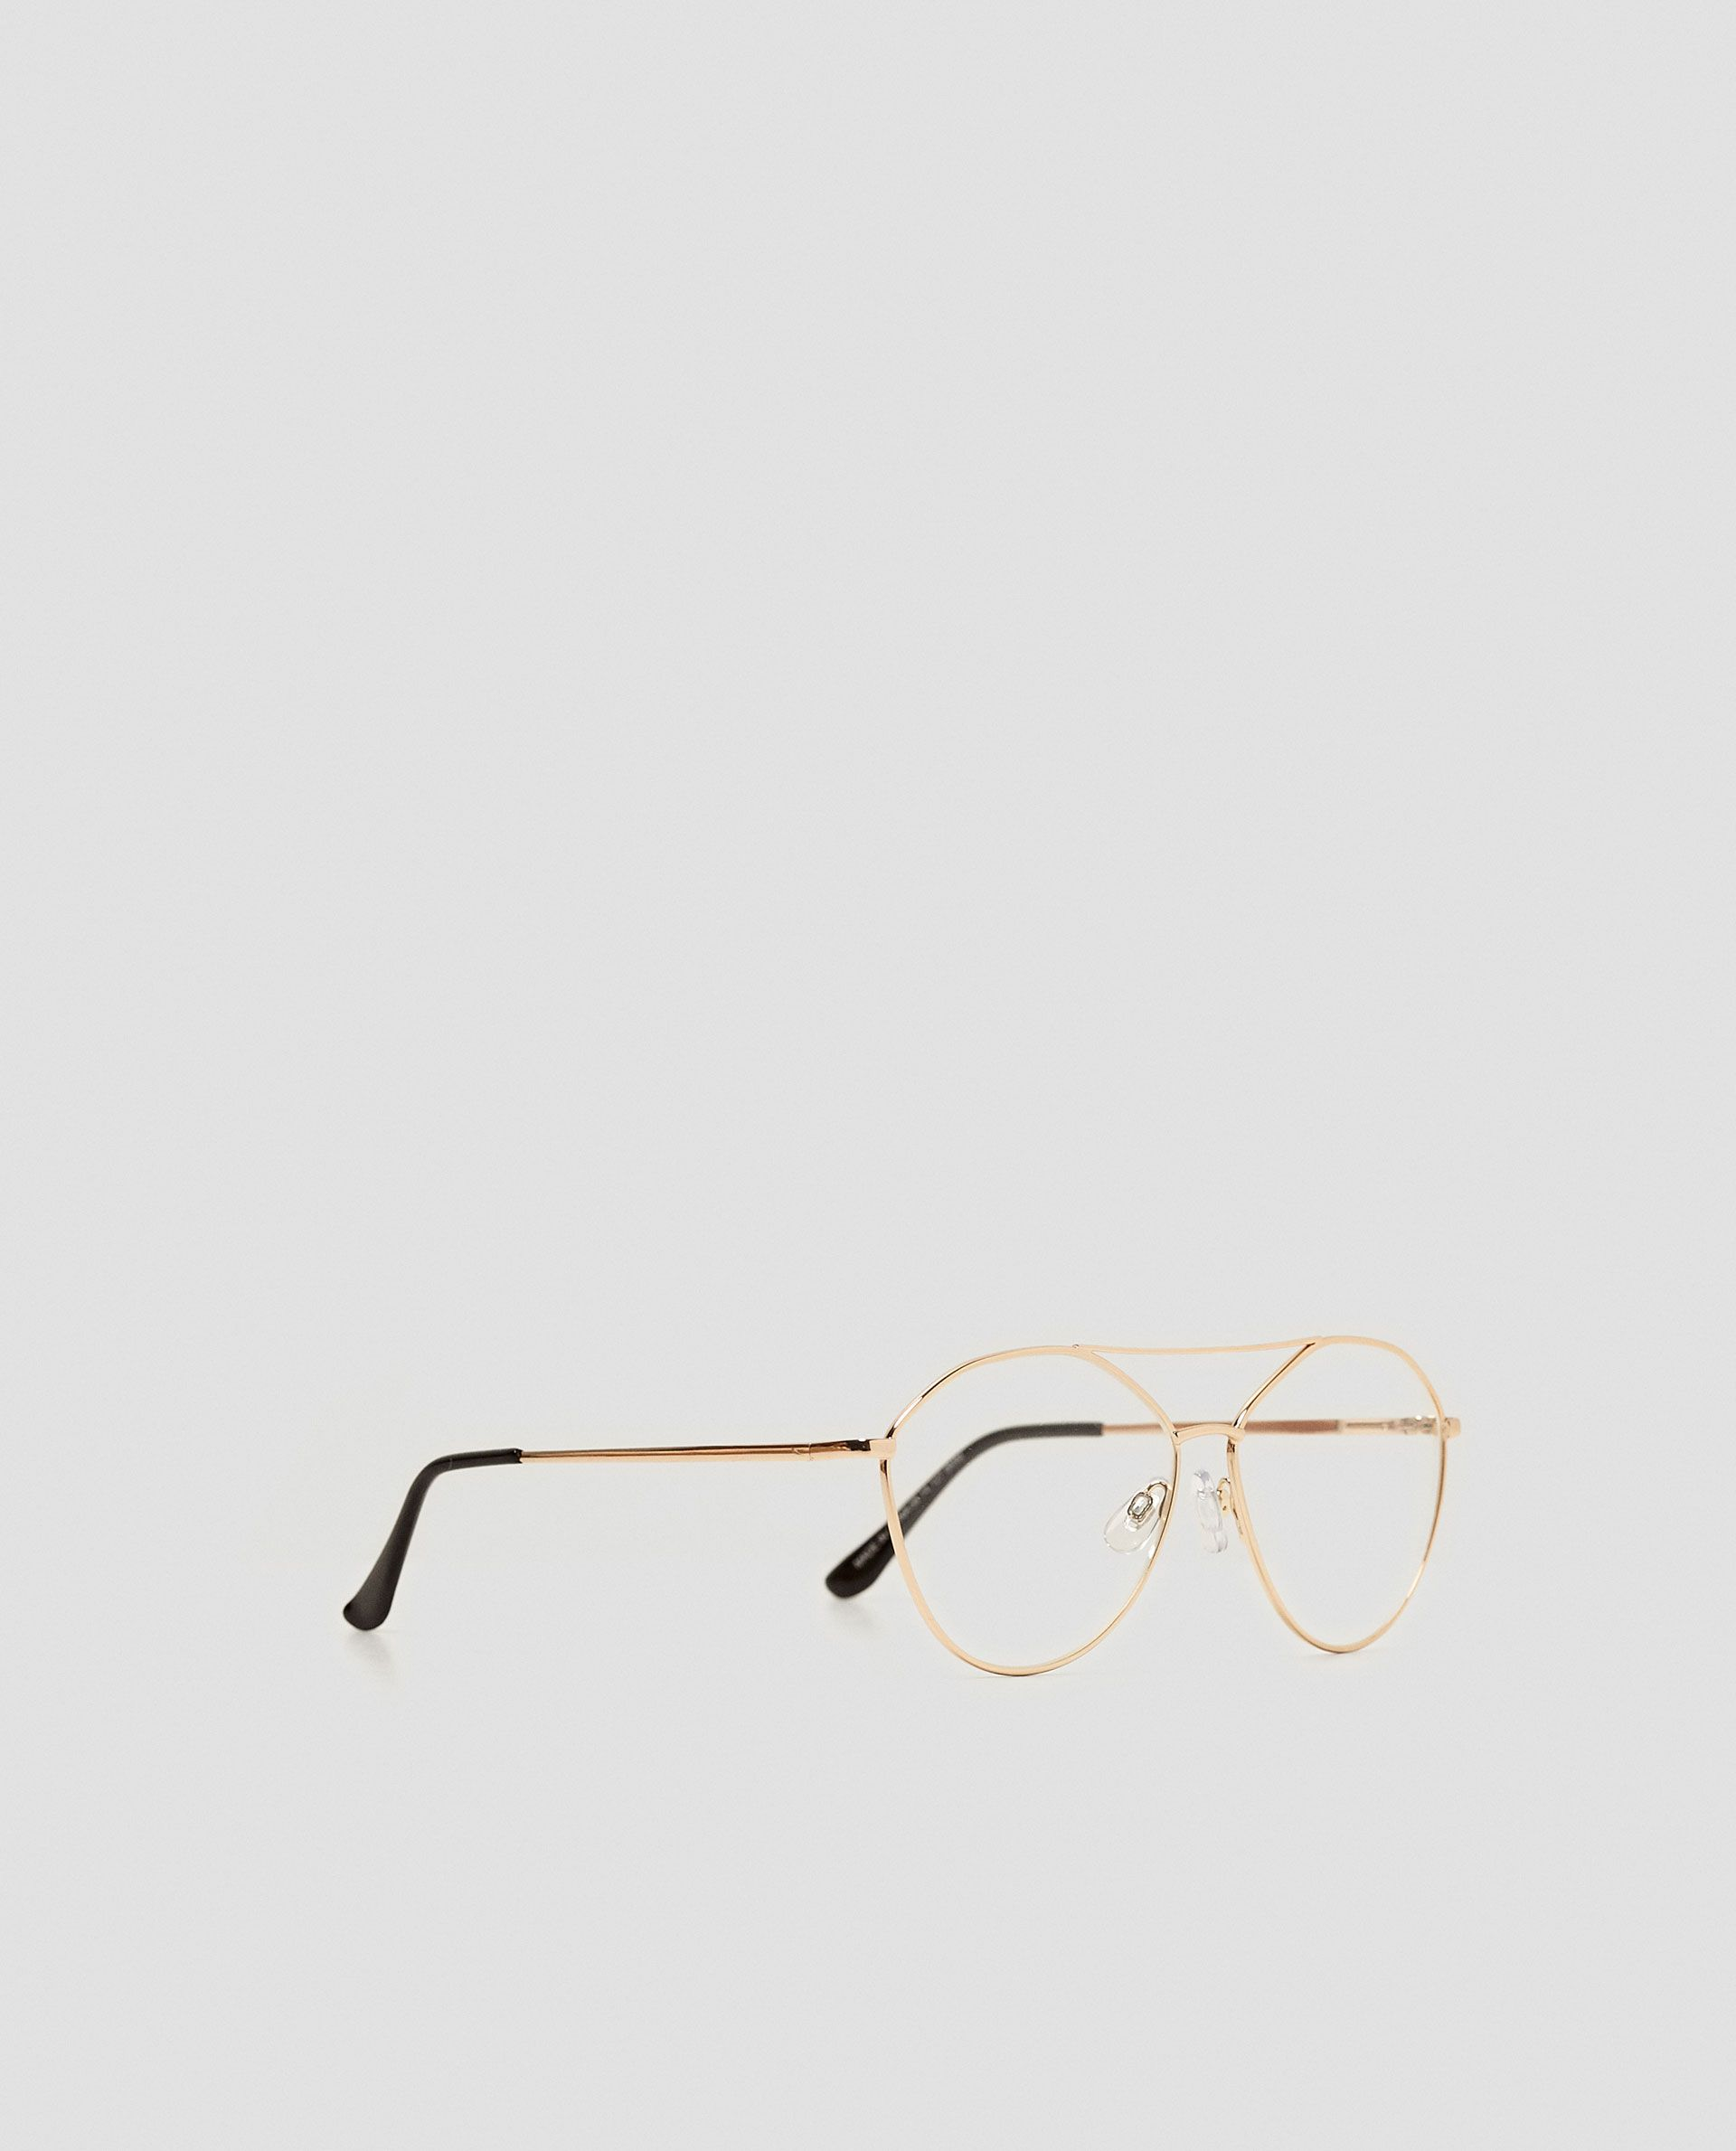 41664ed0251a AVIATOR-STYLE SUNGLASSES from Zara | The Garment in 2019 ...